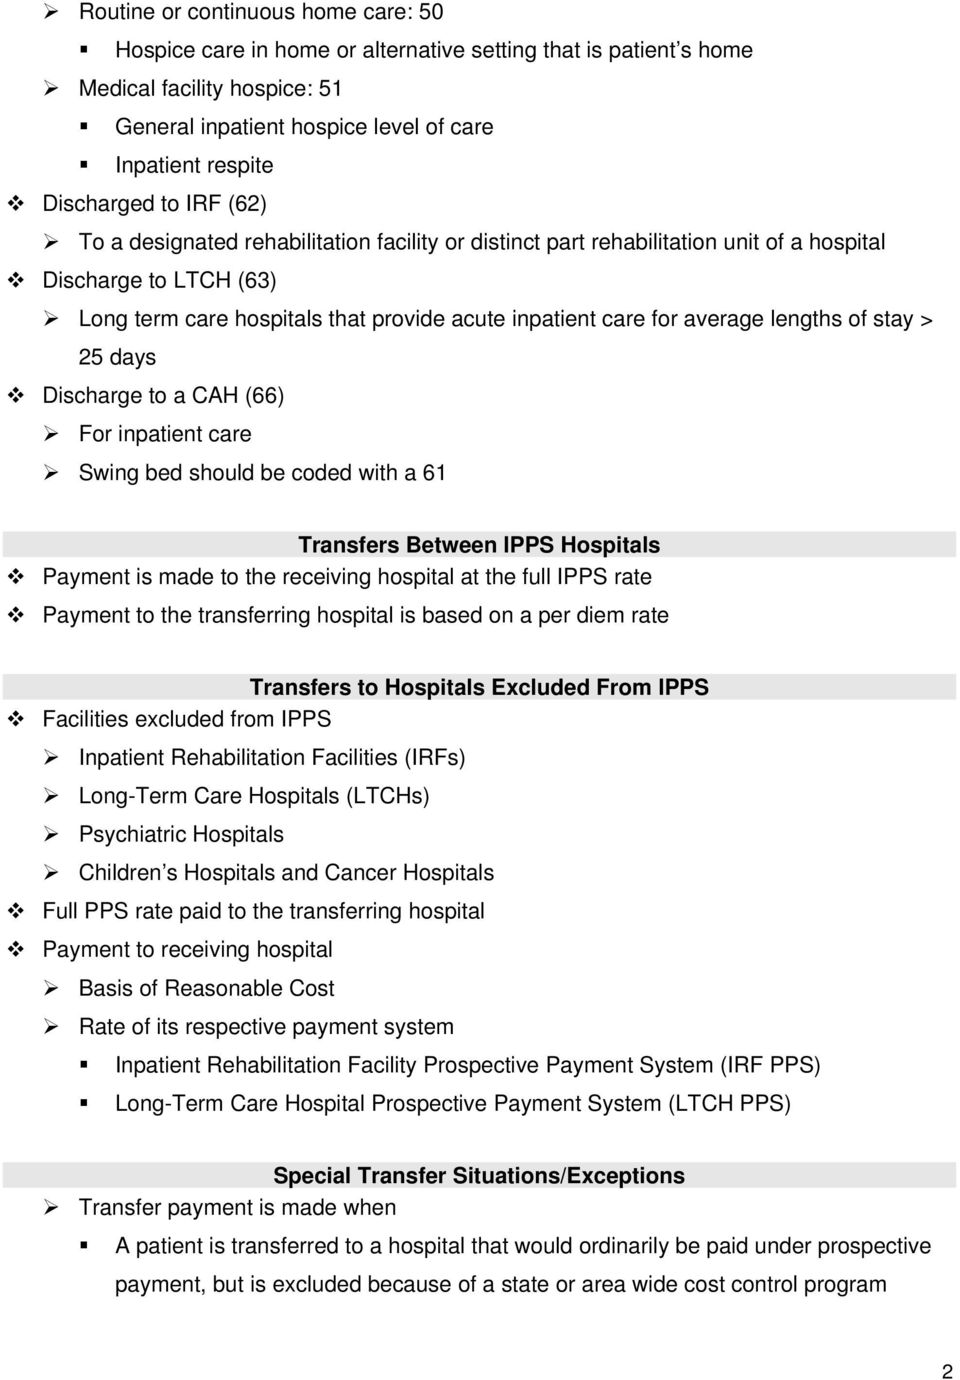 average lengths of stay > 25 days Discharge to a CAH (66) For inpatient care Swing bed should be coded with a 61 Transfers Between IPPS Hospitals Payment is made to the receiving hospital at the full